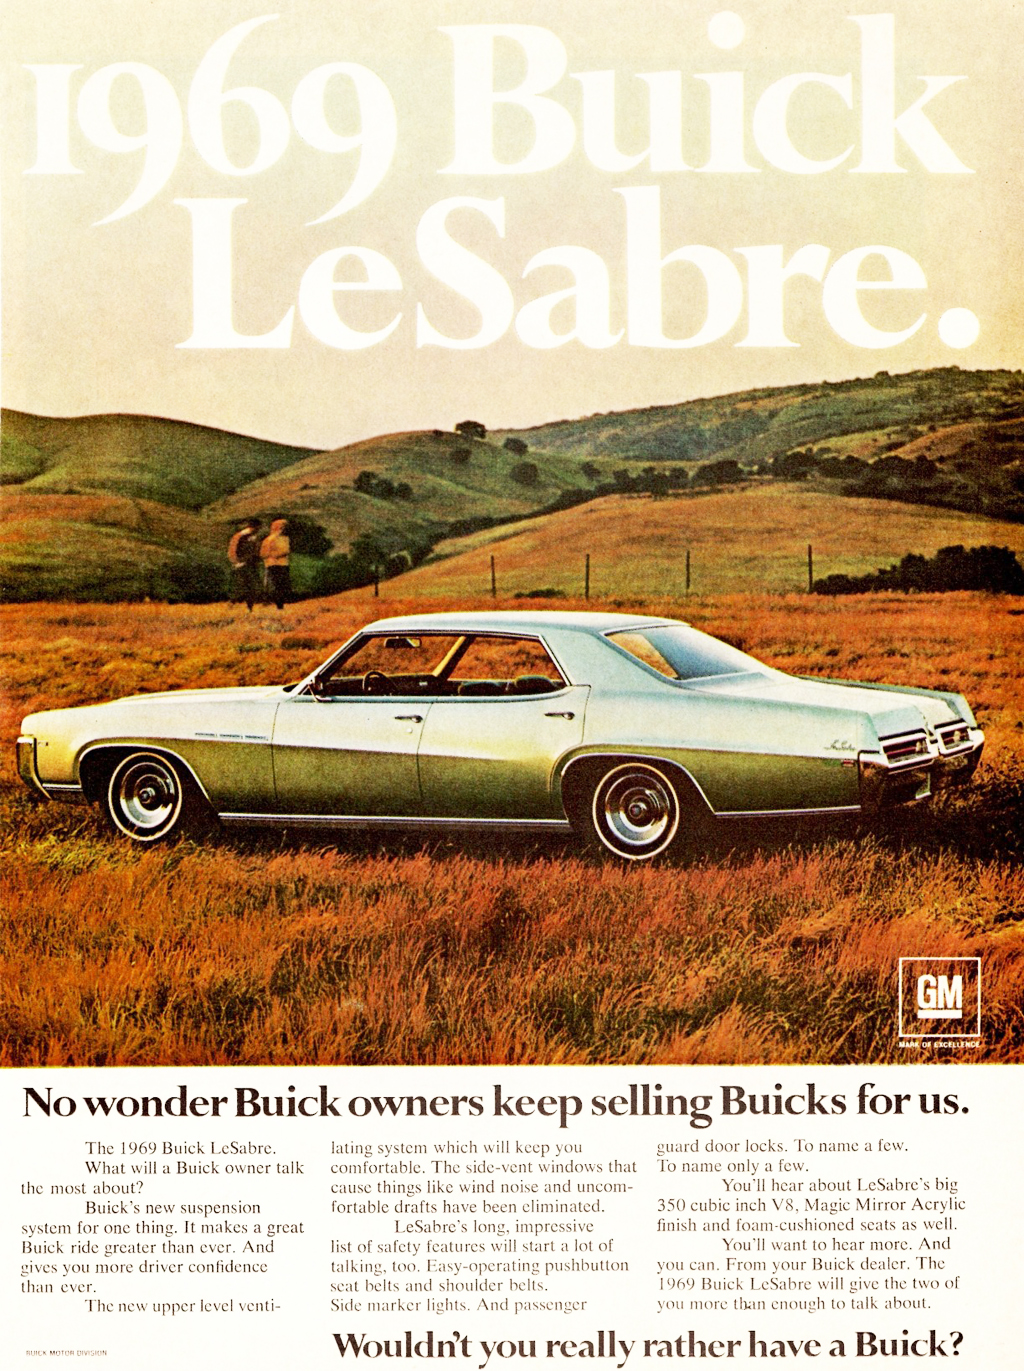 1969 Buick LeSabre ad | CLASSIC CARS TODAY ONLINE